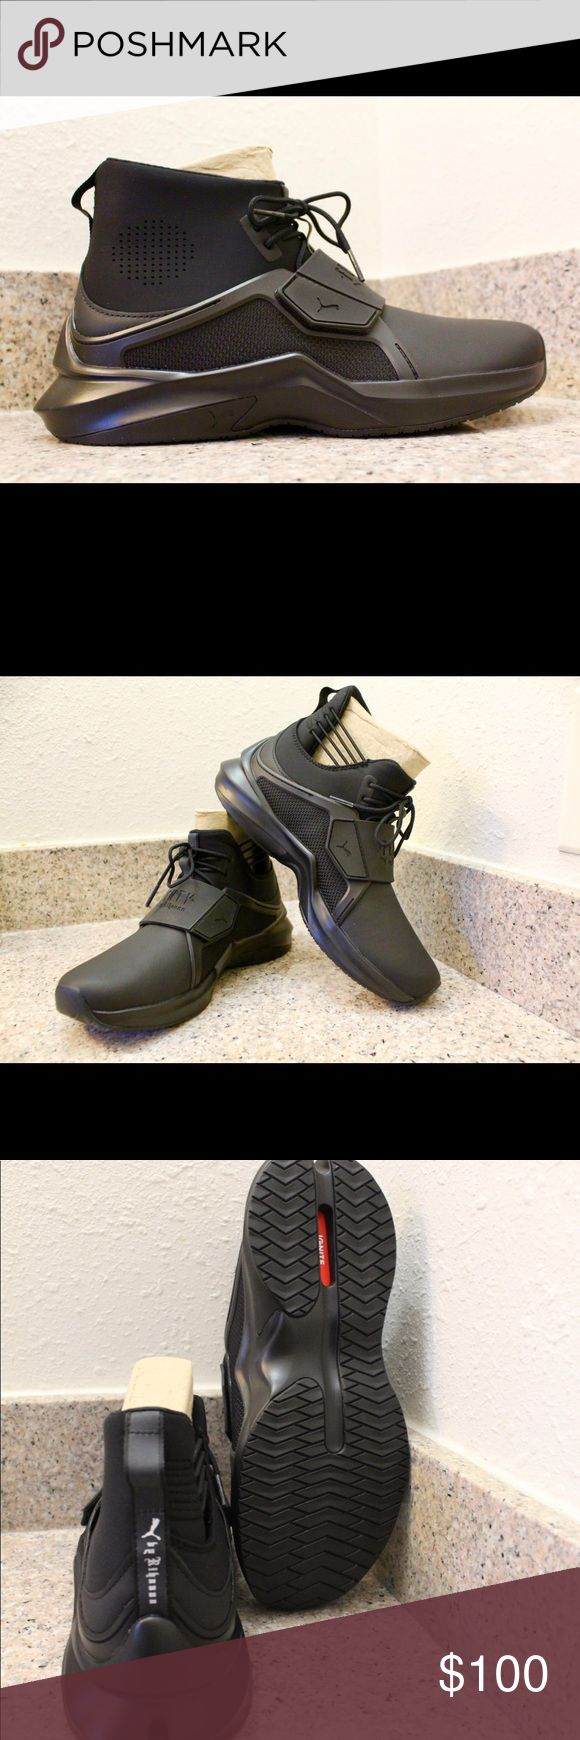 New Puma The Trainer Hi by Fenty Black Women Shoes Brand new shoes in new condition at an unbeatable price. Regular price is $190. I have a US size 7.5 and US size 7 in woman. I am giving the best price you will find them new. Check them out on the Puma website for size information so you don't buy it and it does not fit you. They will include the box. There is also a Fenty dust bag that will come with the shoes. Puma Shoes Sneakers